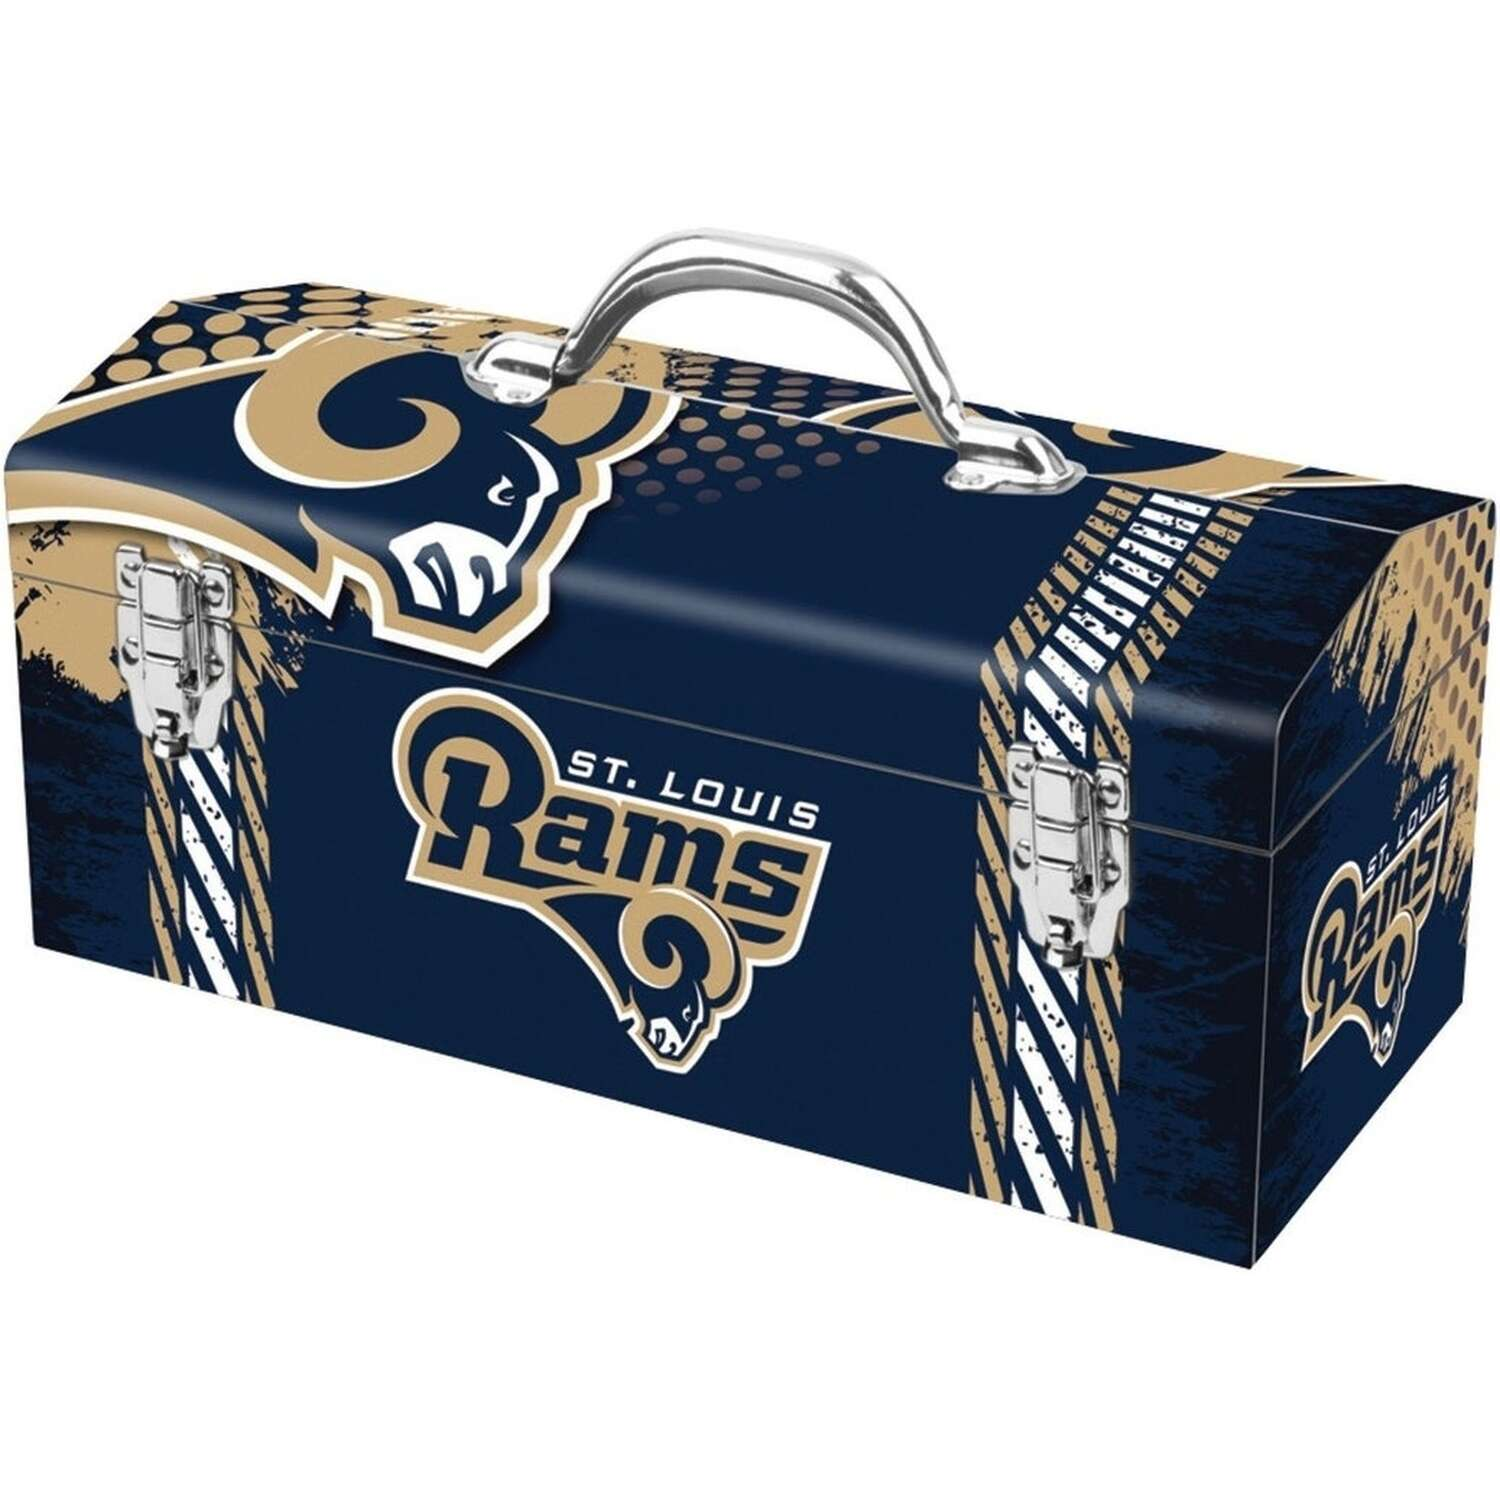 Windco  16.25 in. Steel  St. Louis Rams  Art Deco Tool Box  7.1 in. W x 7.75 in. H